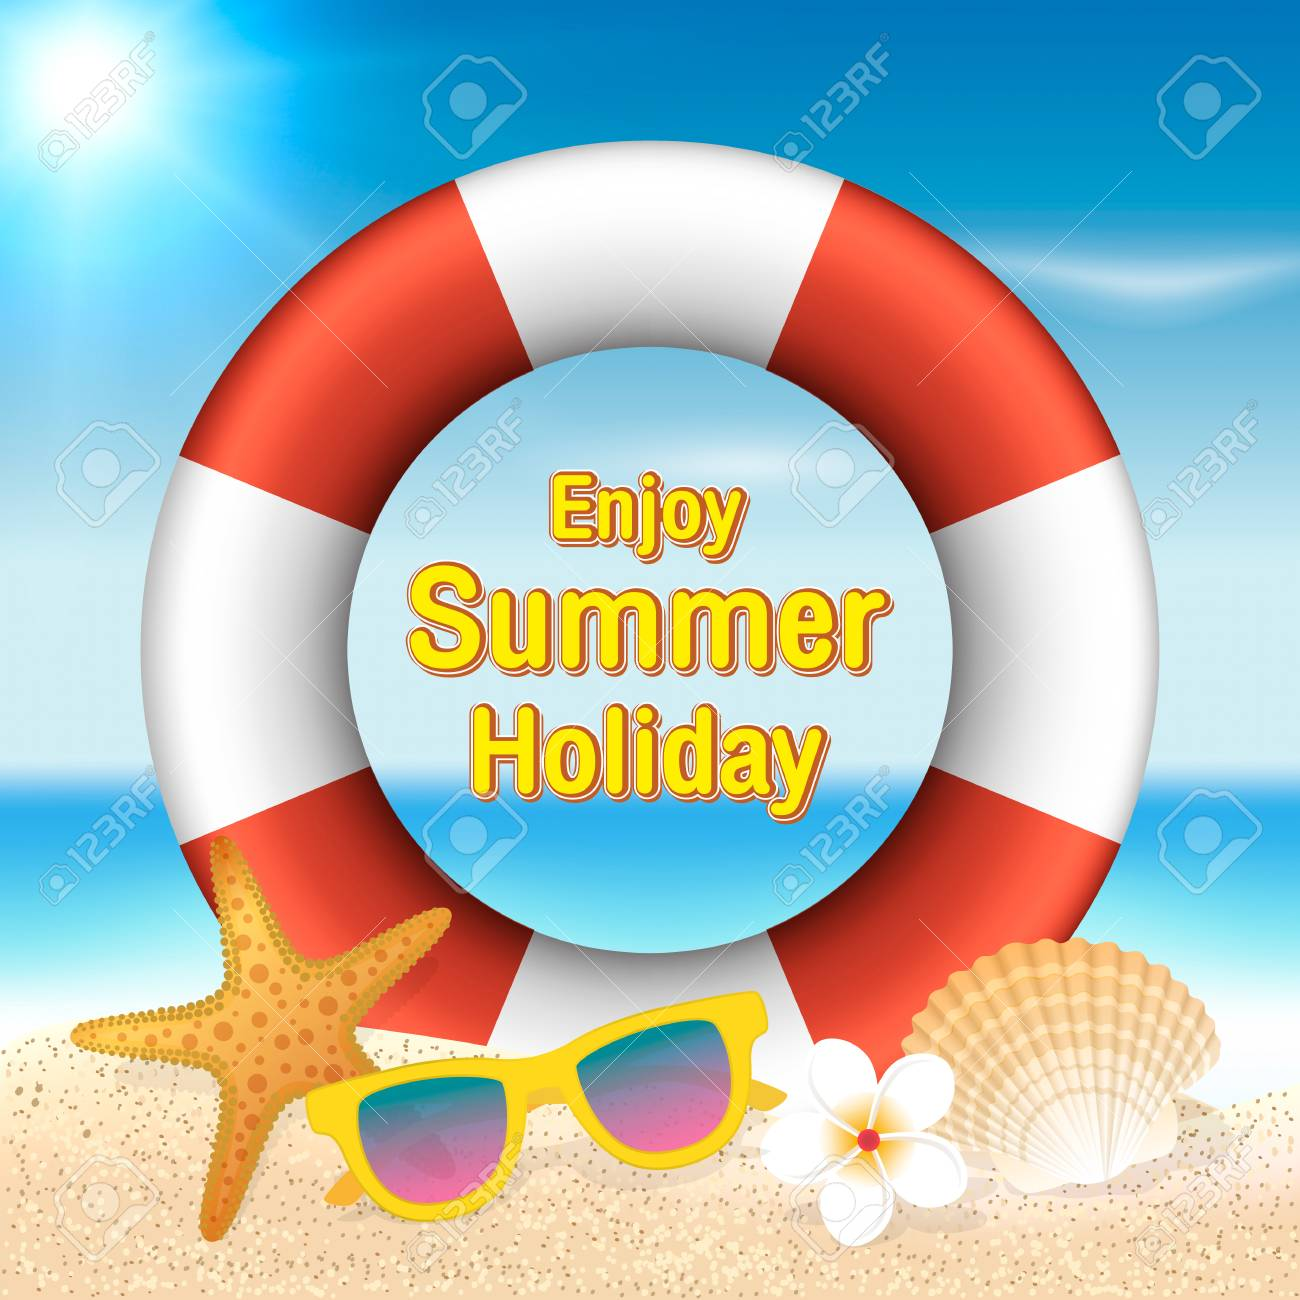 Enjoy Summer Holiday Background Lifebuoy Sunglasses Starfish Shell And Flower On